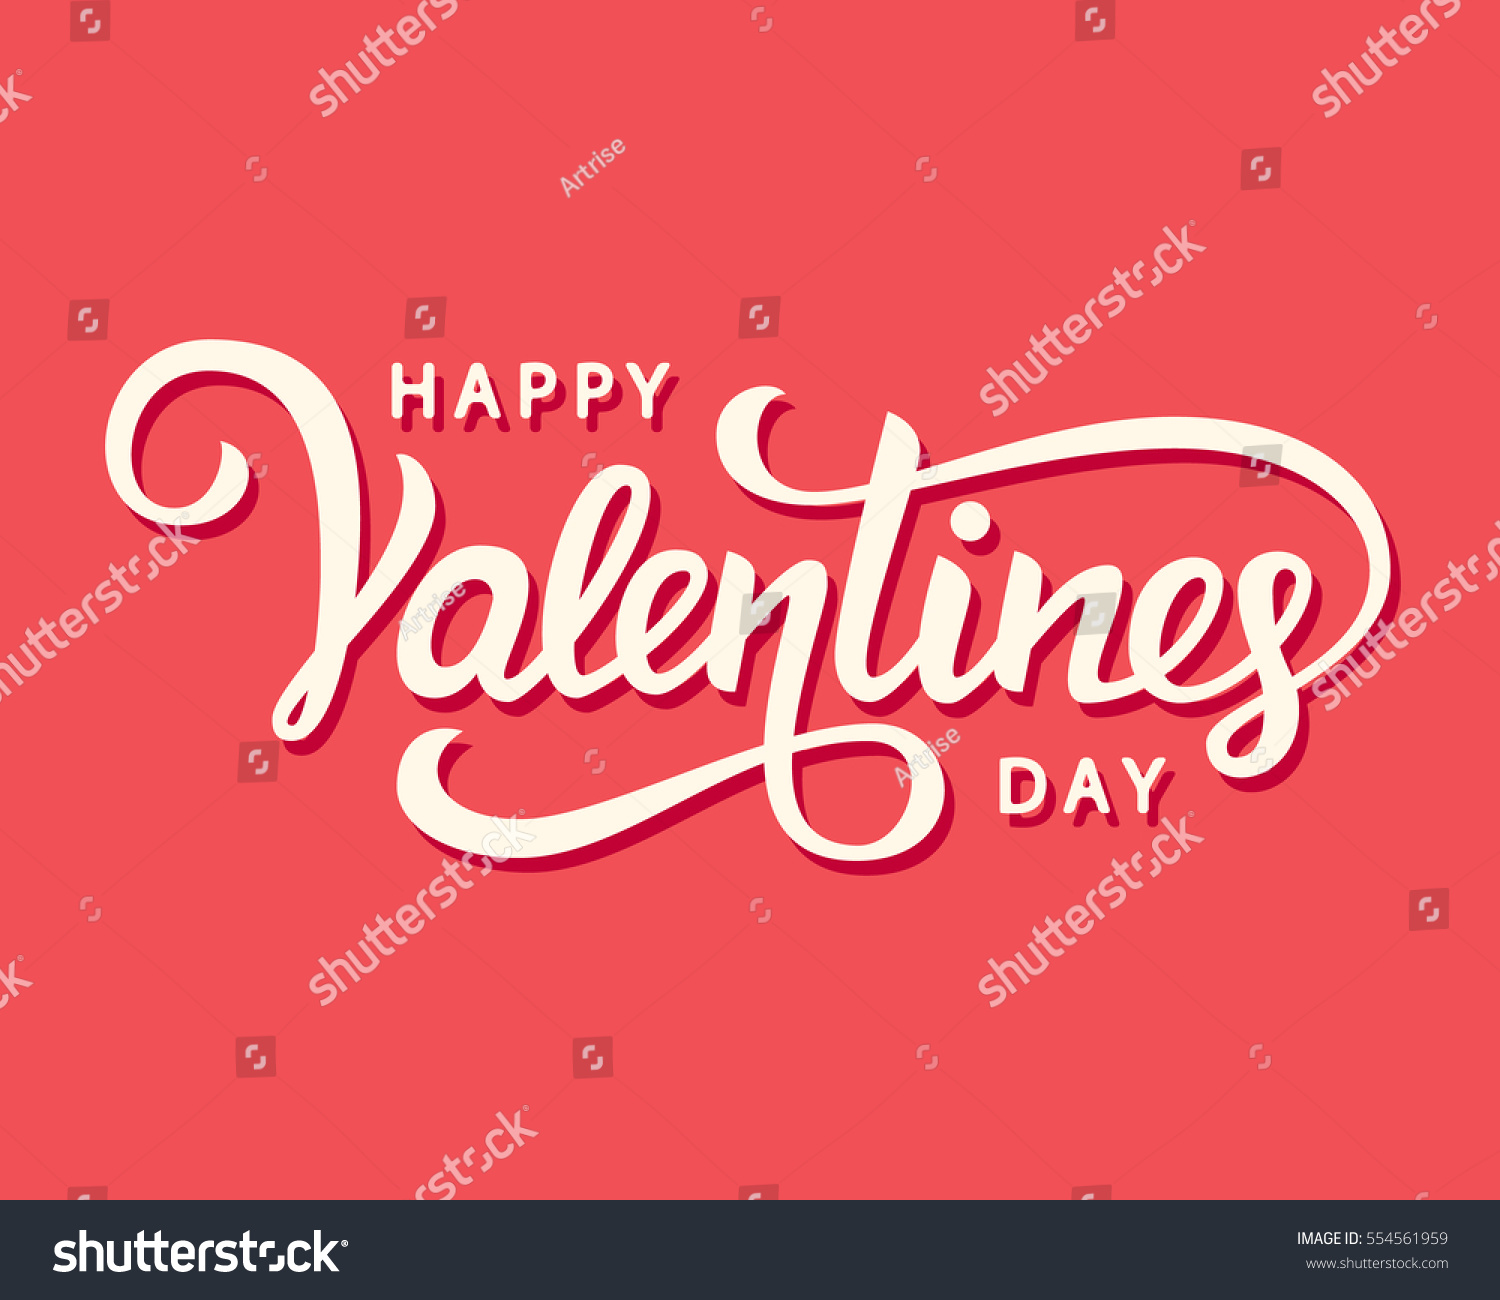 Happy Valentines Day romantic greeting card, typography poster with modern calligraphy. Retro vintage style. Vector Illustration #554561959